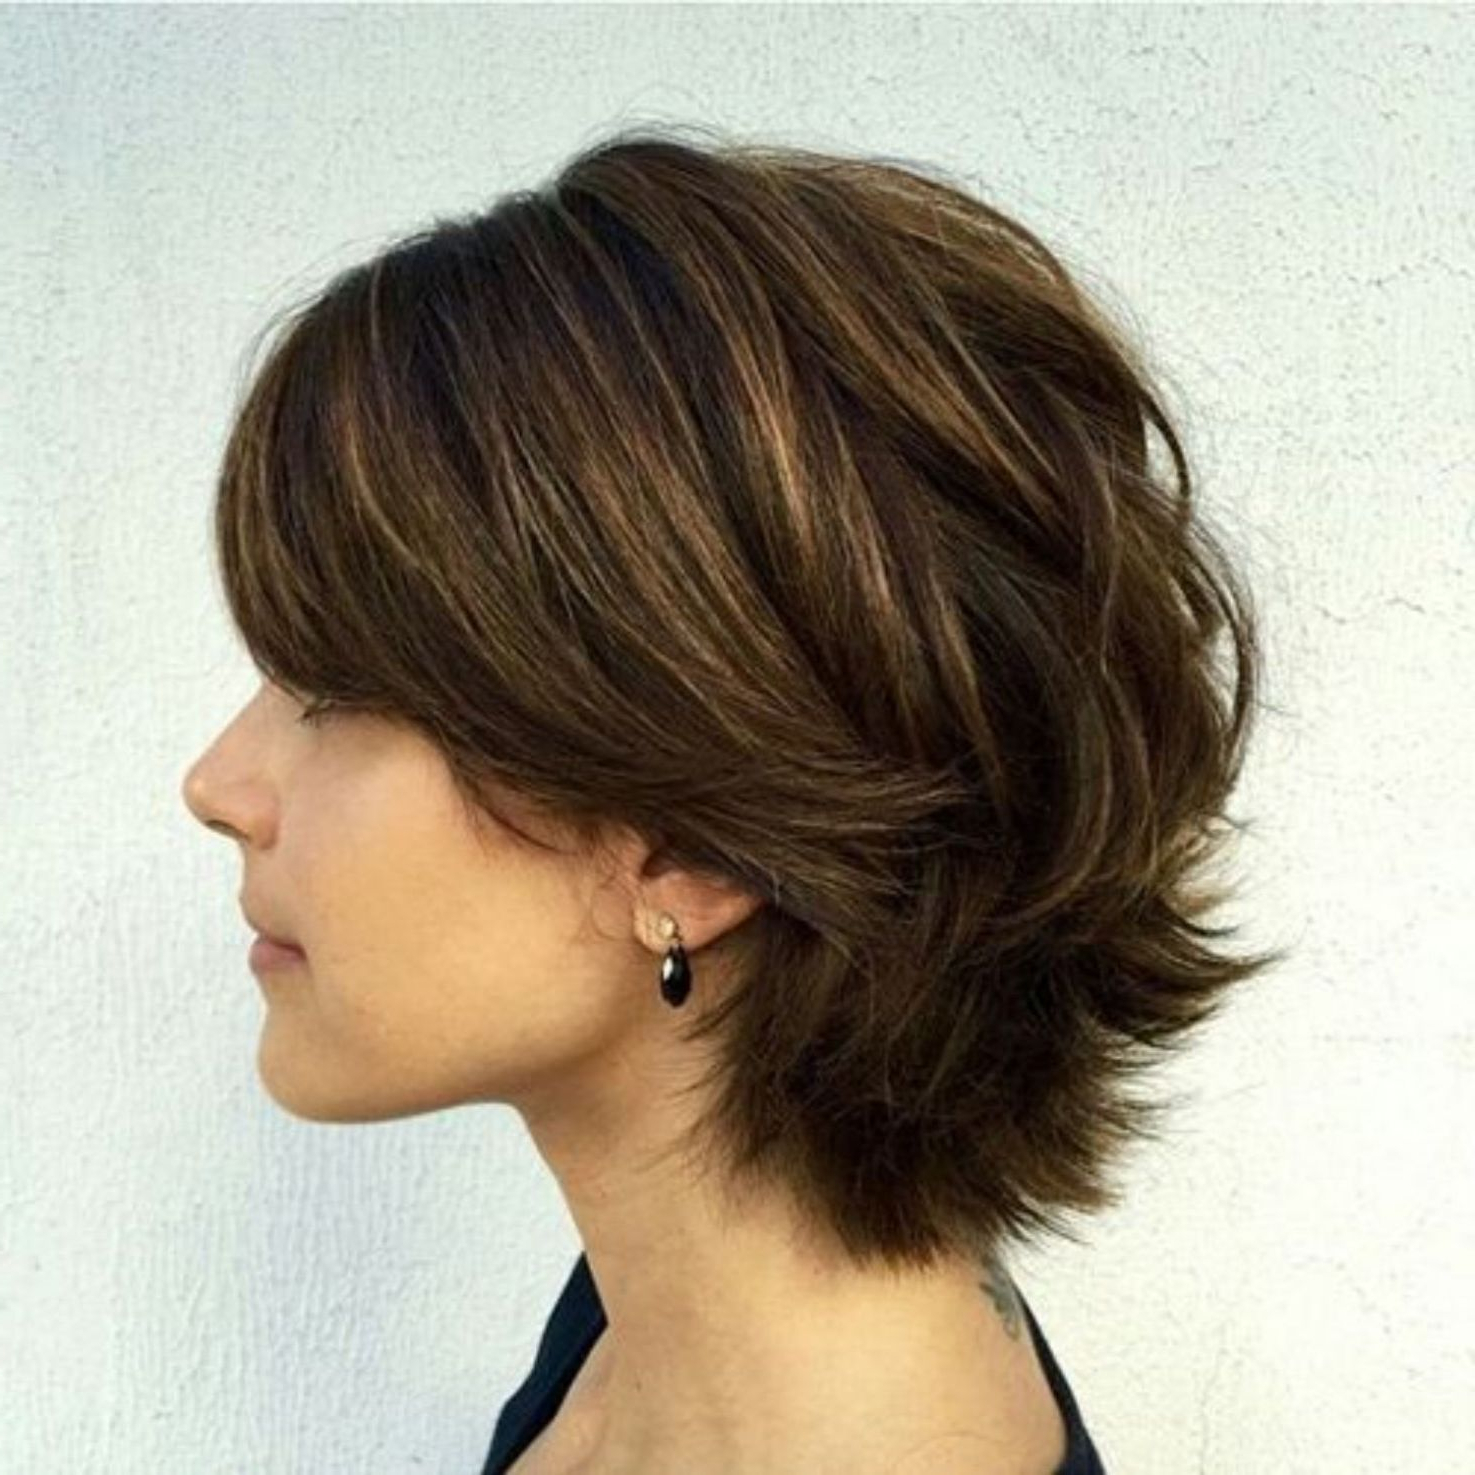 60 Classy Short Haircuts And Hairstyles For Thick Hair In 2018 With Medium Short Haircuts For Thick Hair (View 23 of 25)